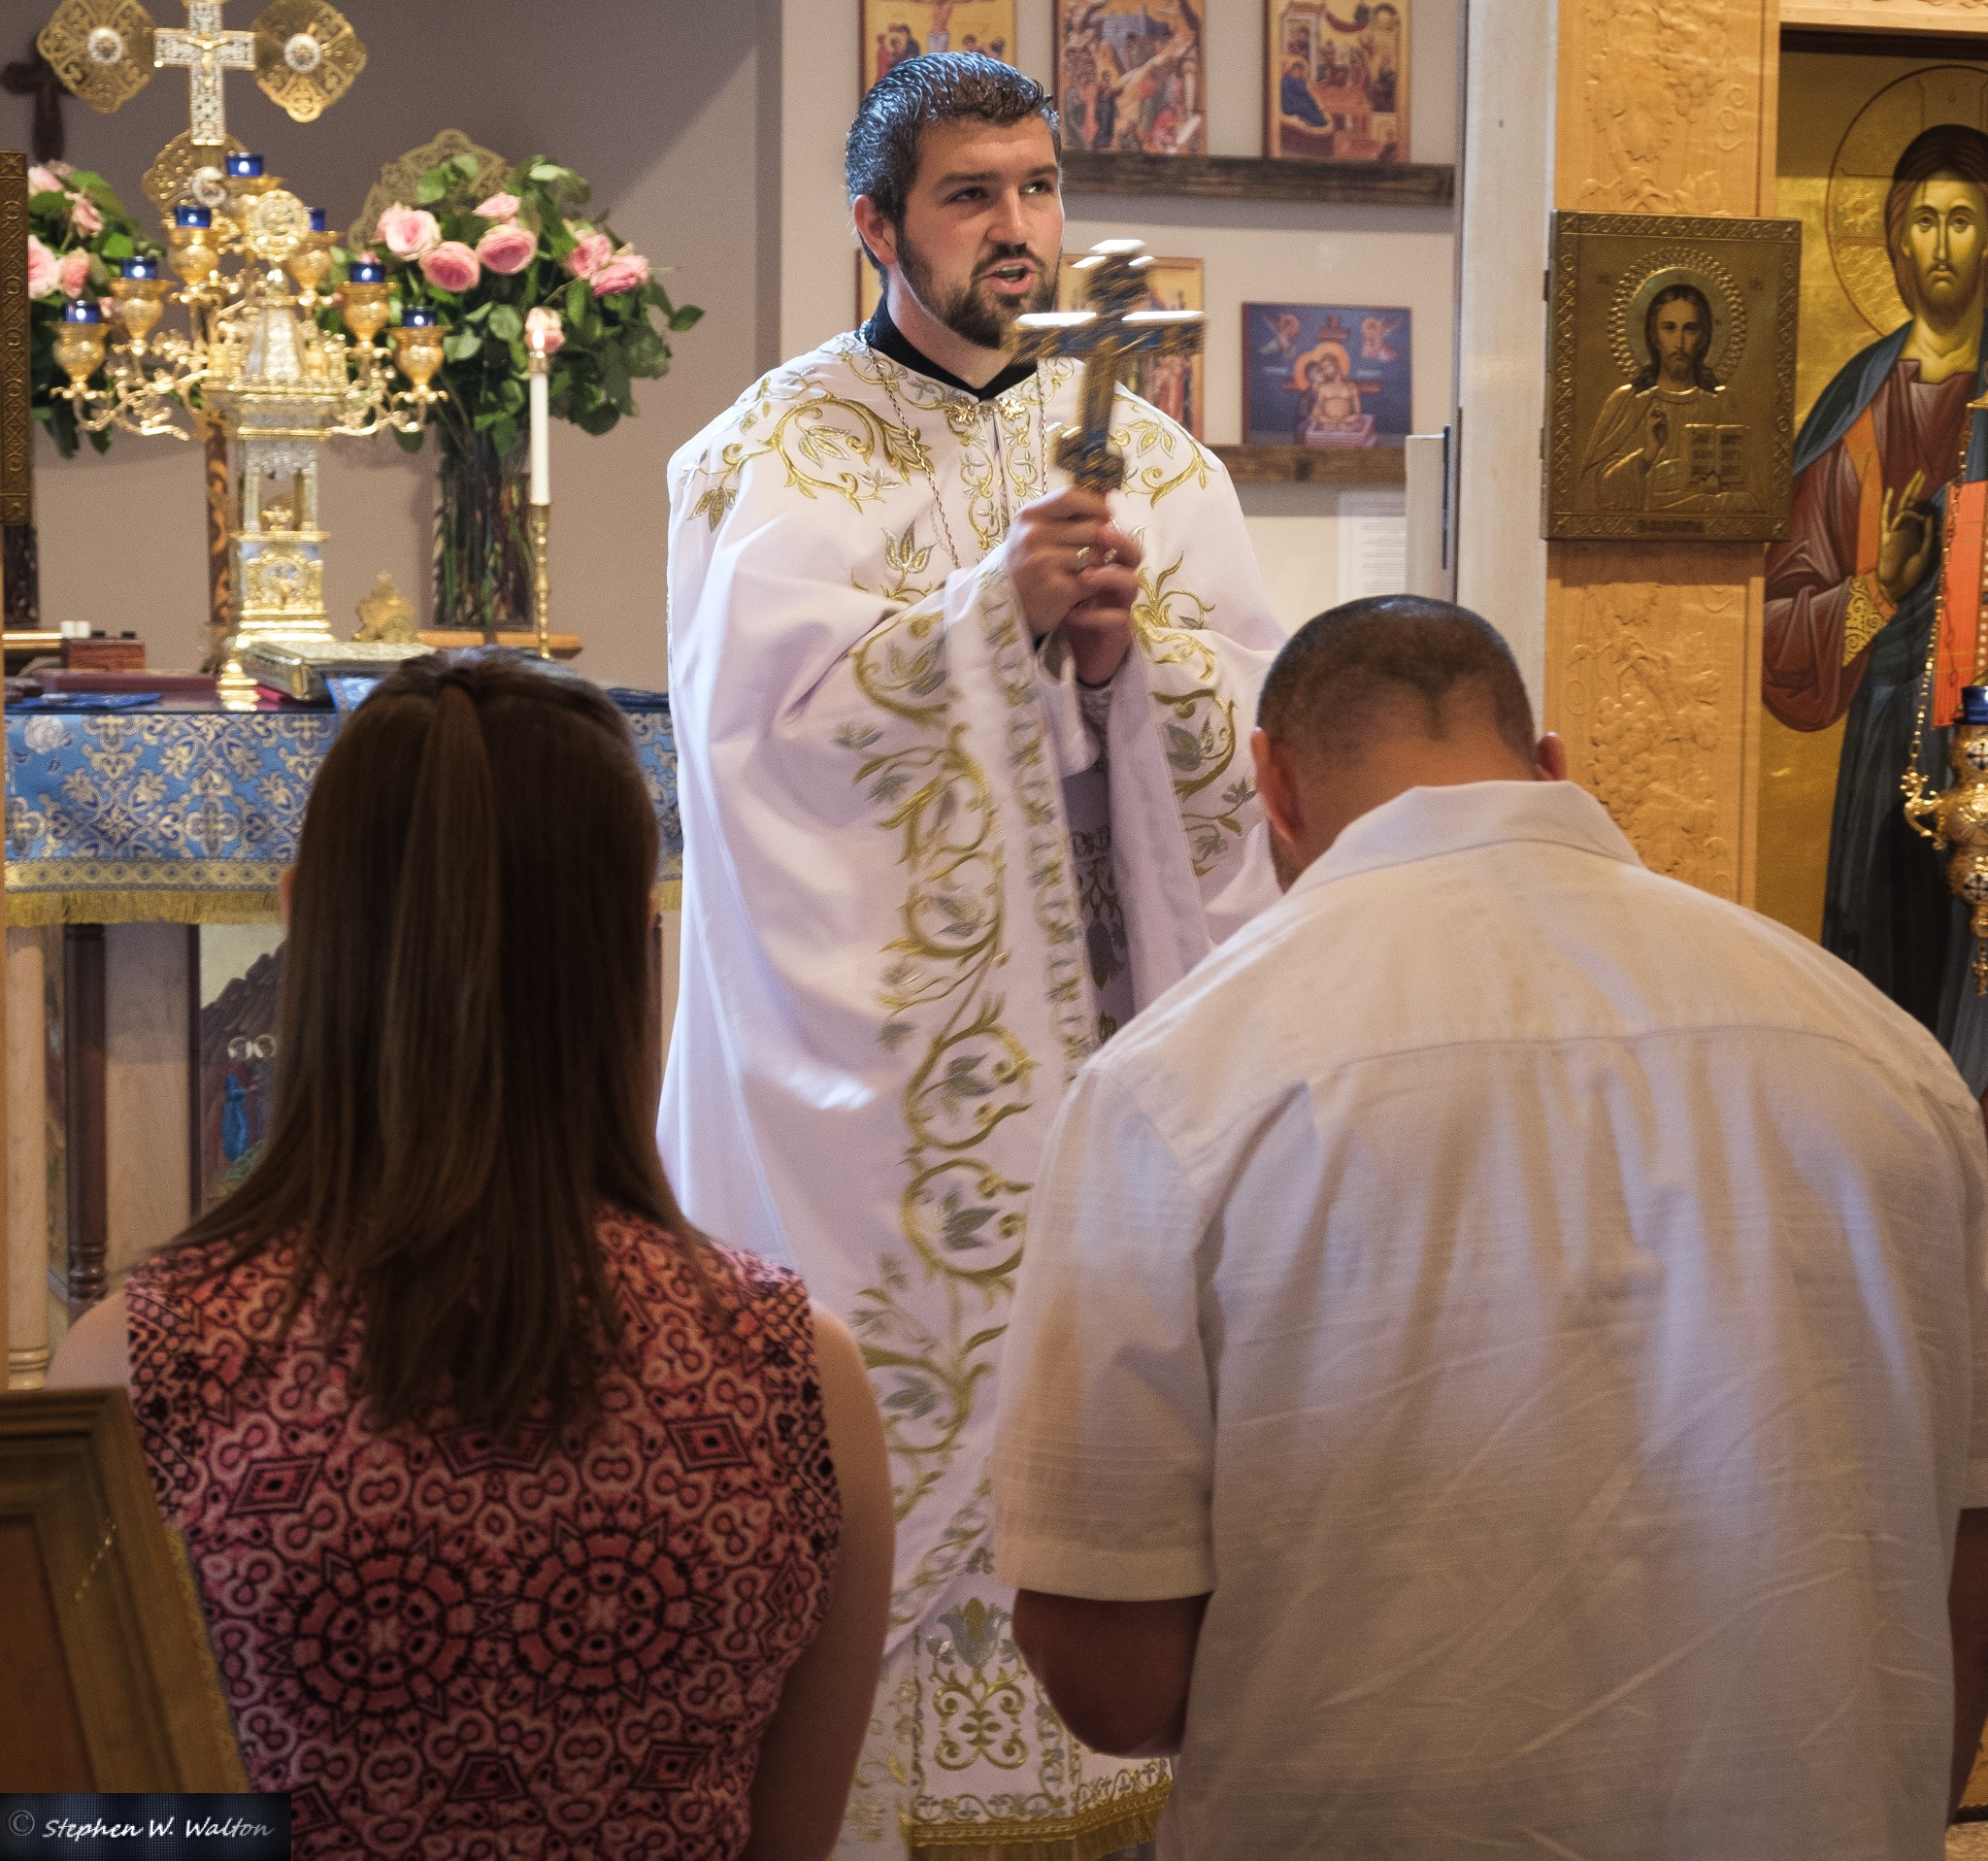 Fr. Gabriel offers the final blessing of the Divine Liturgy, with Theophan and his daughter Nyomi